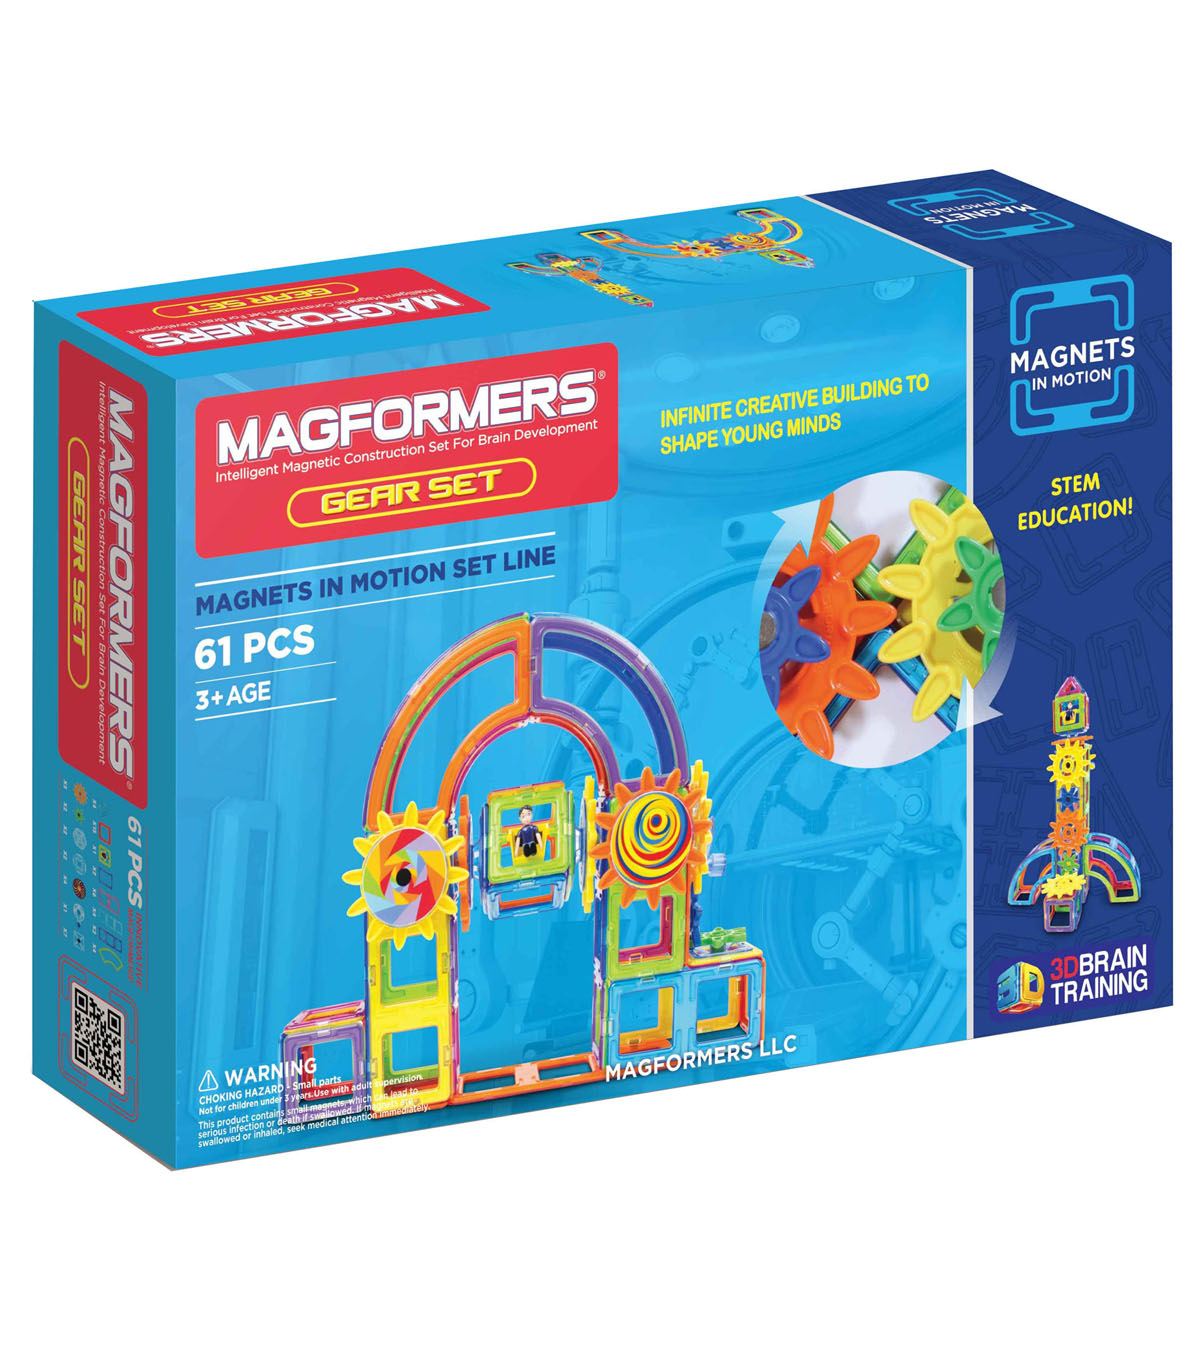 Magnets in Motion 61pc Gear Set